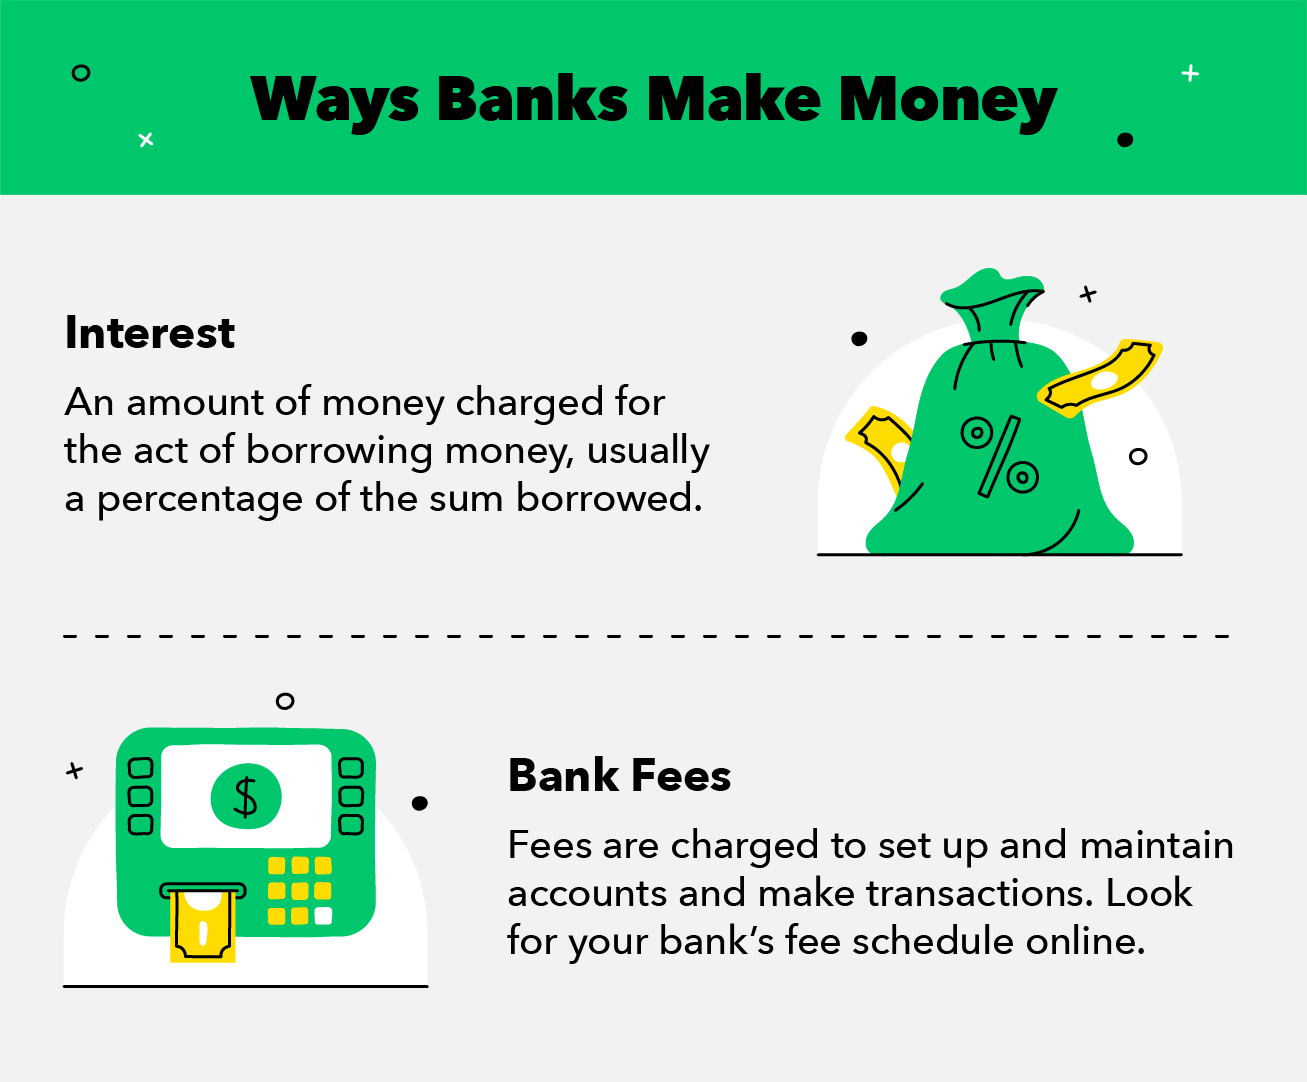 ways-banks-make-money copy 2